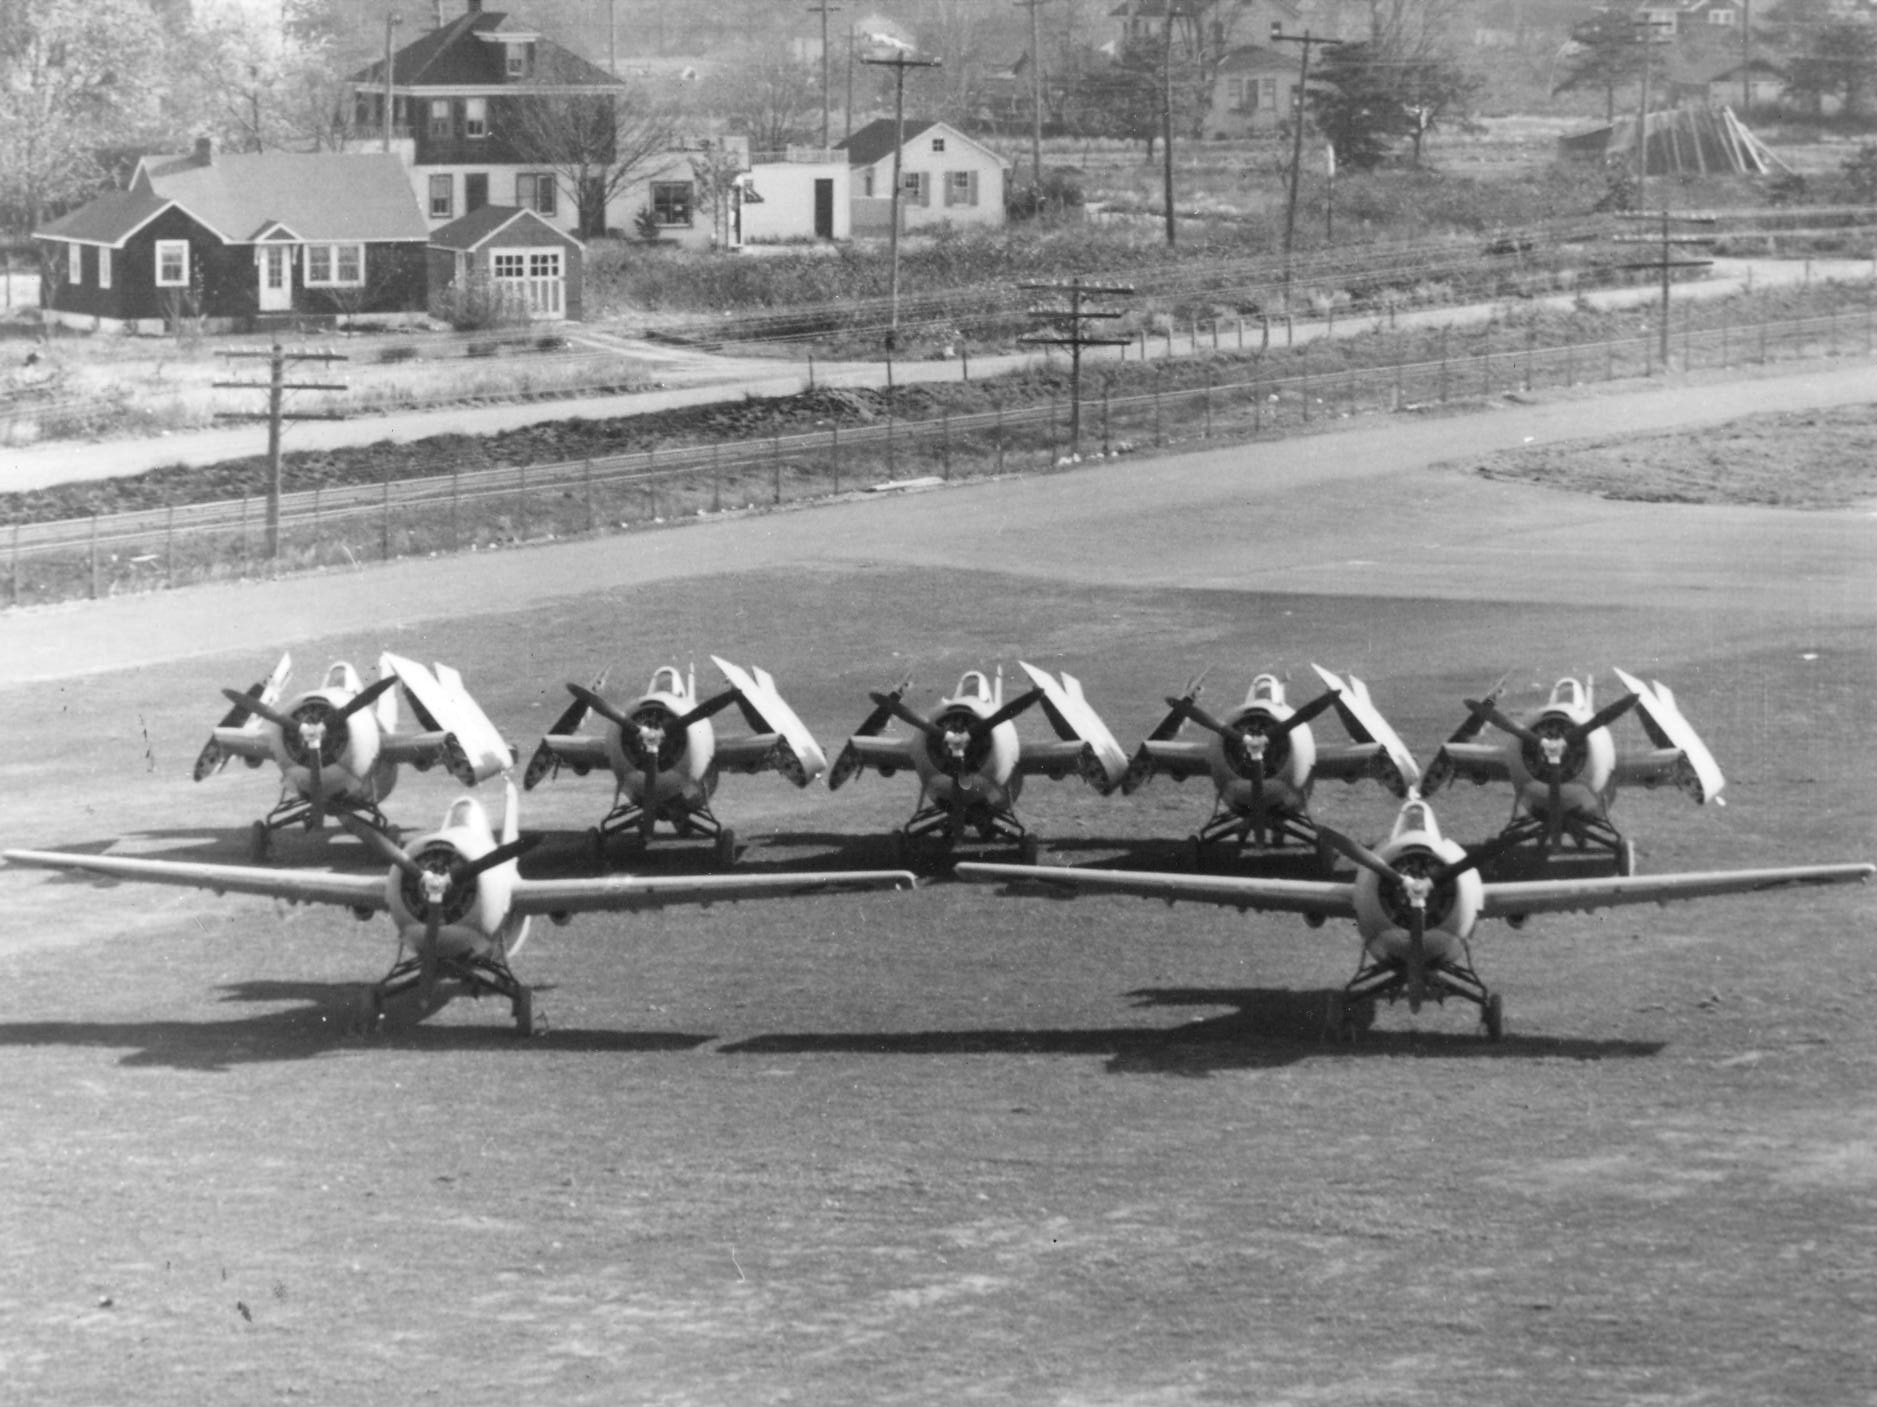 Space savings ... Five folded Martlets compared with two unfolded Wildcats. For this, and the ability to be stowed below on the narrow armoured carrier lifts, the FAA was willing to delay its order of the F4F.